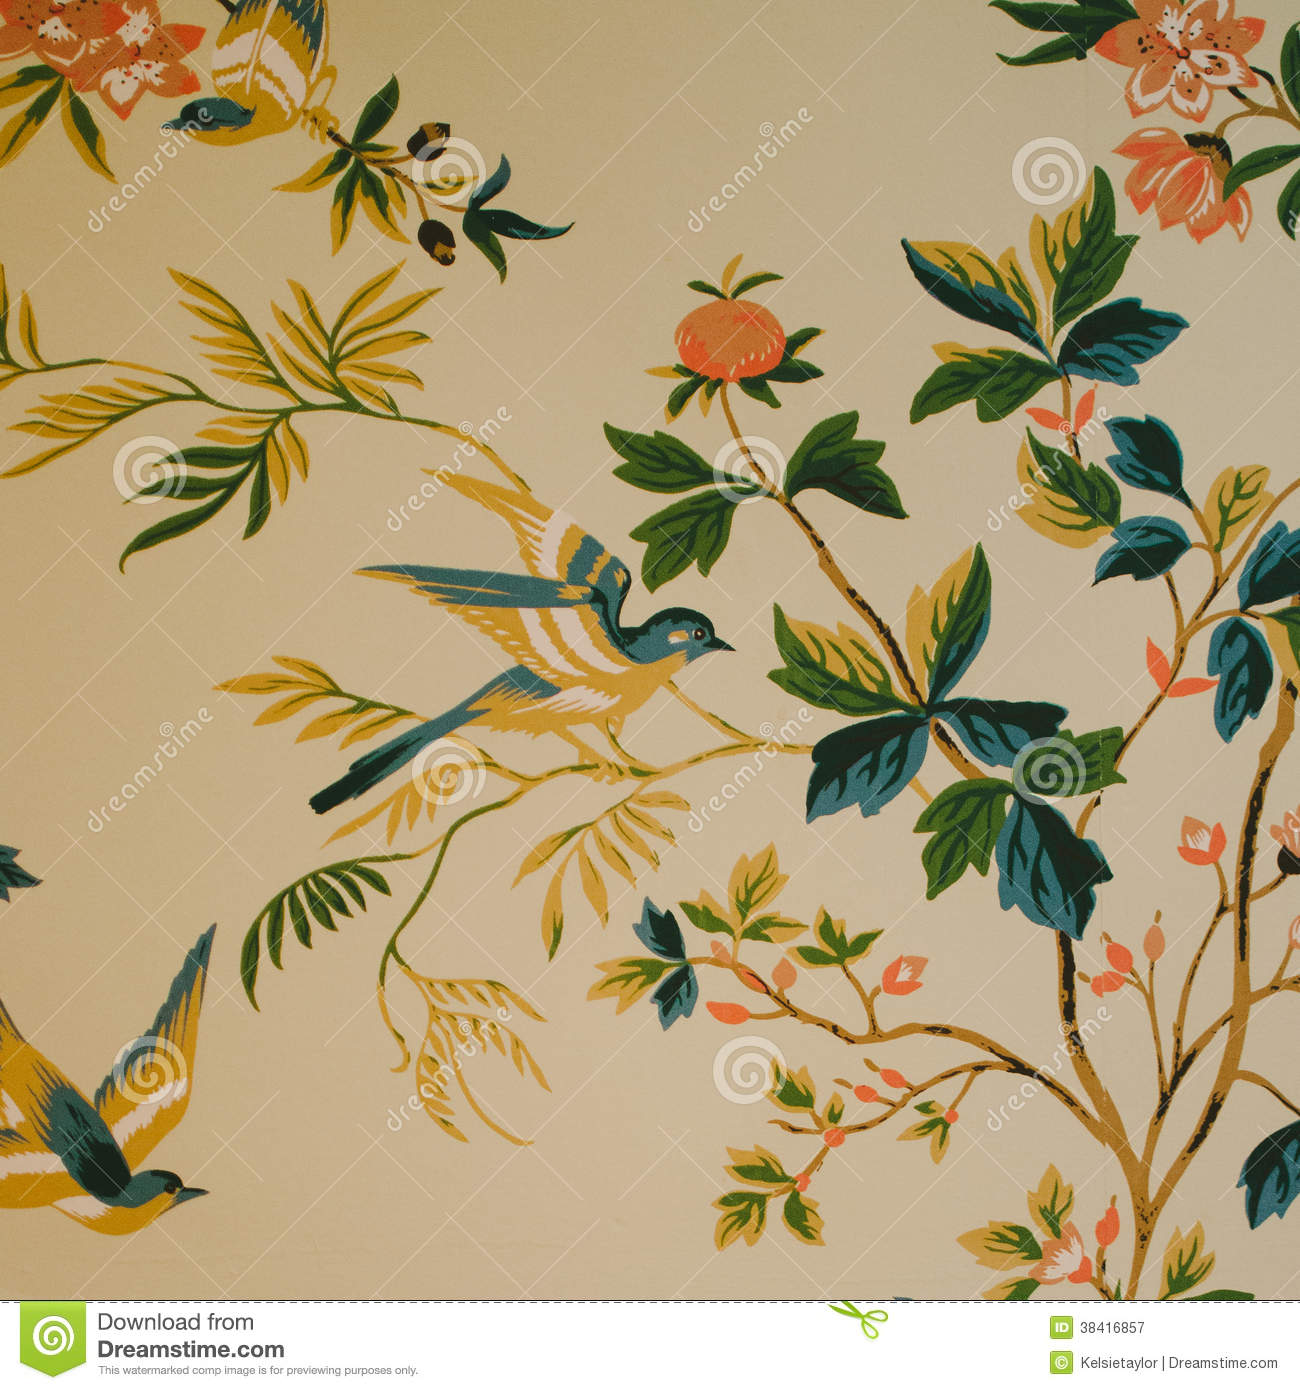 bird & flower print wallpaper stock image - image of leaf, flower